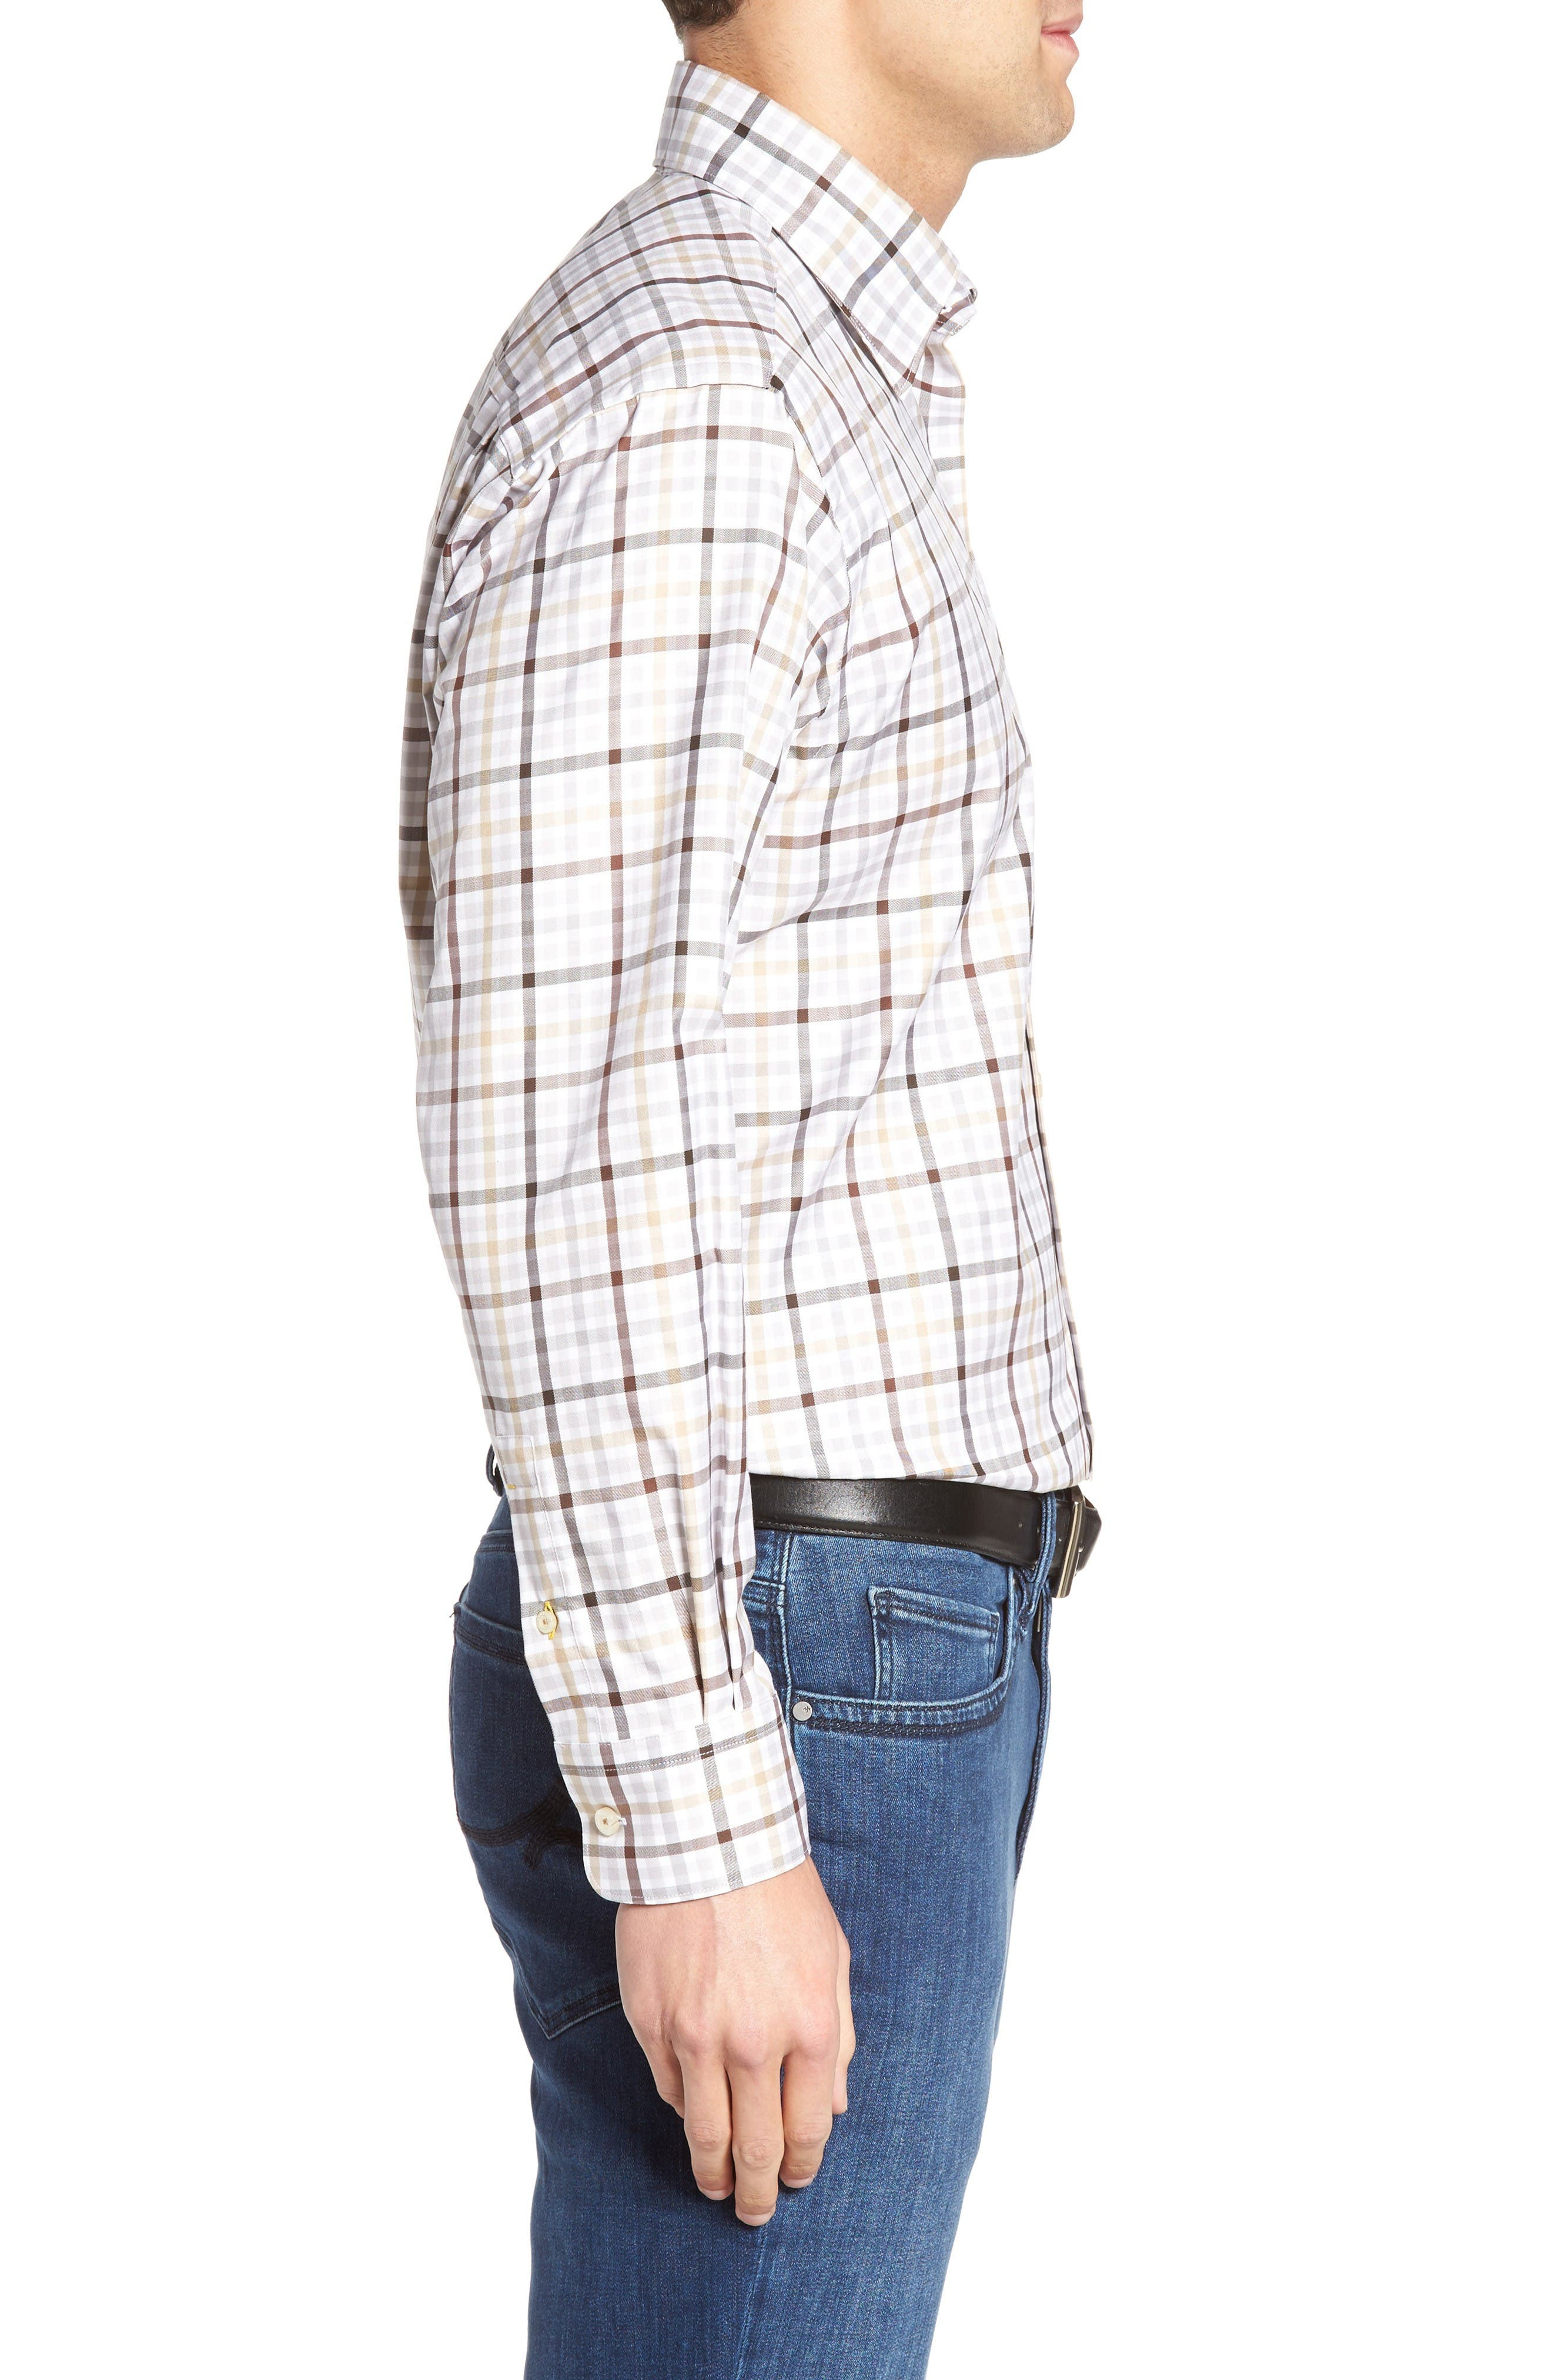 Anderson Classic Fit Plaid Micro Twill Sport Shirt,                             Alternate thumbnail 3, color,                             201